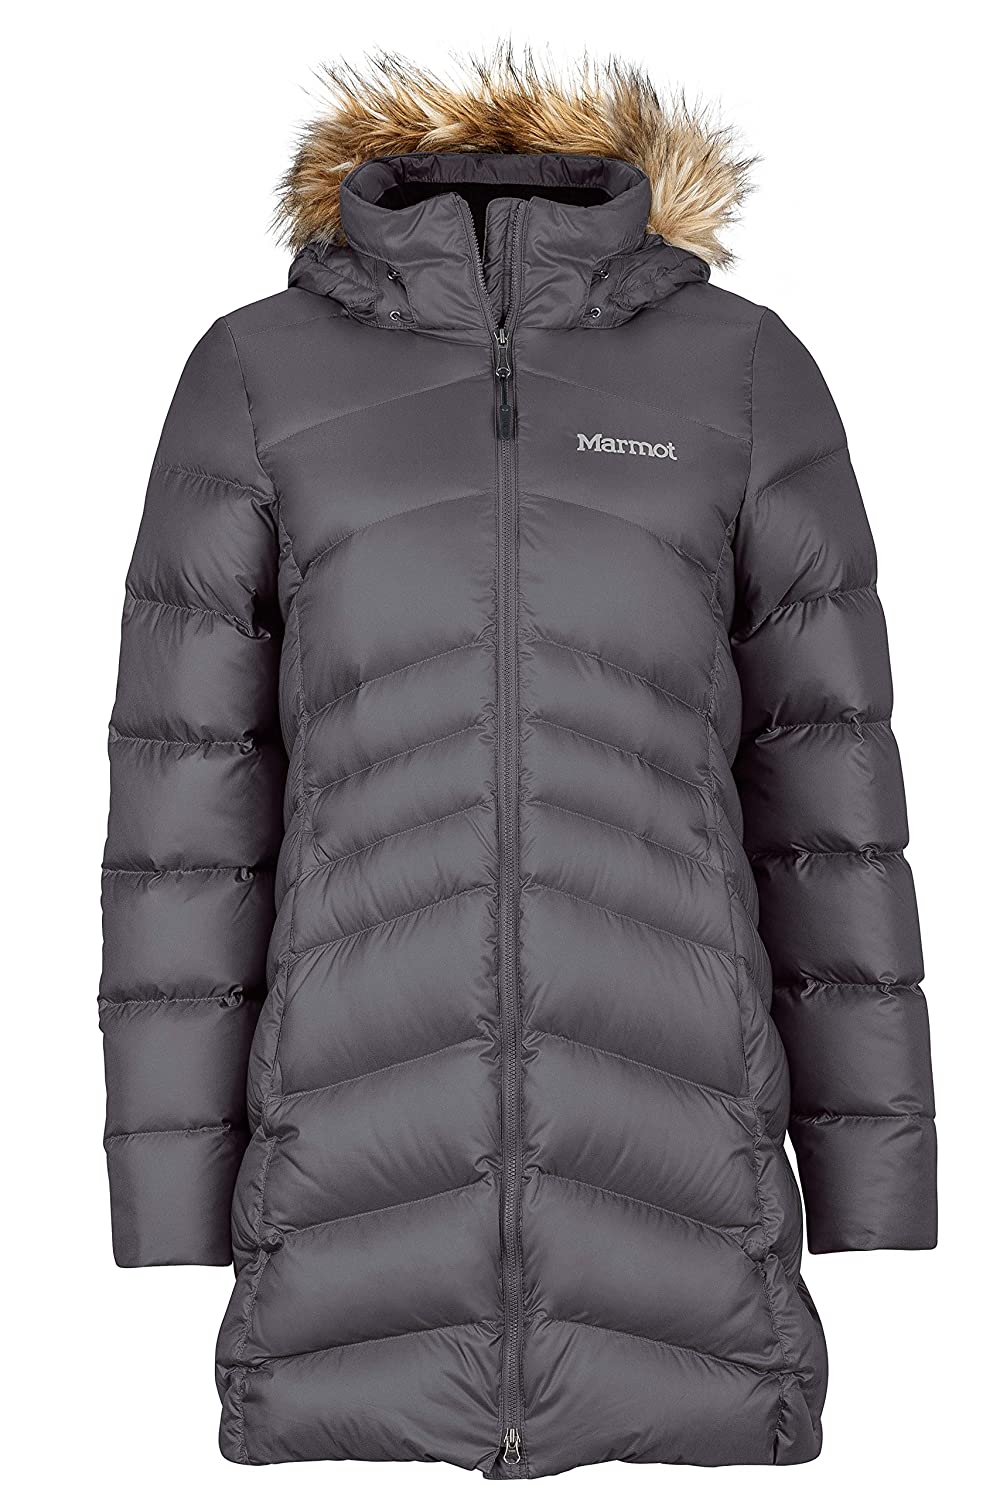 Marmot Montreal Women's Knee-Length Down Puffer Coat Marmot Mountain B000BDGXKC-P